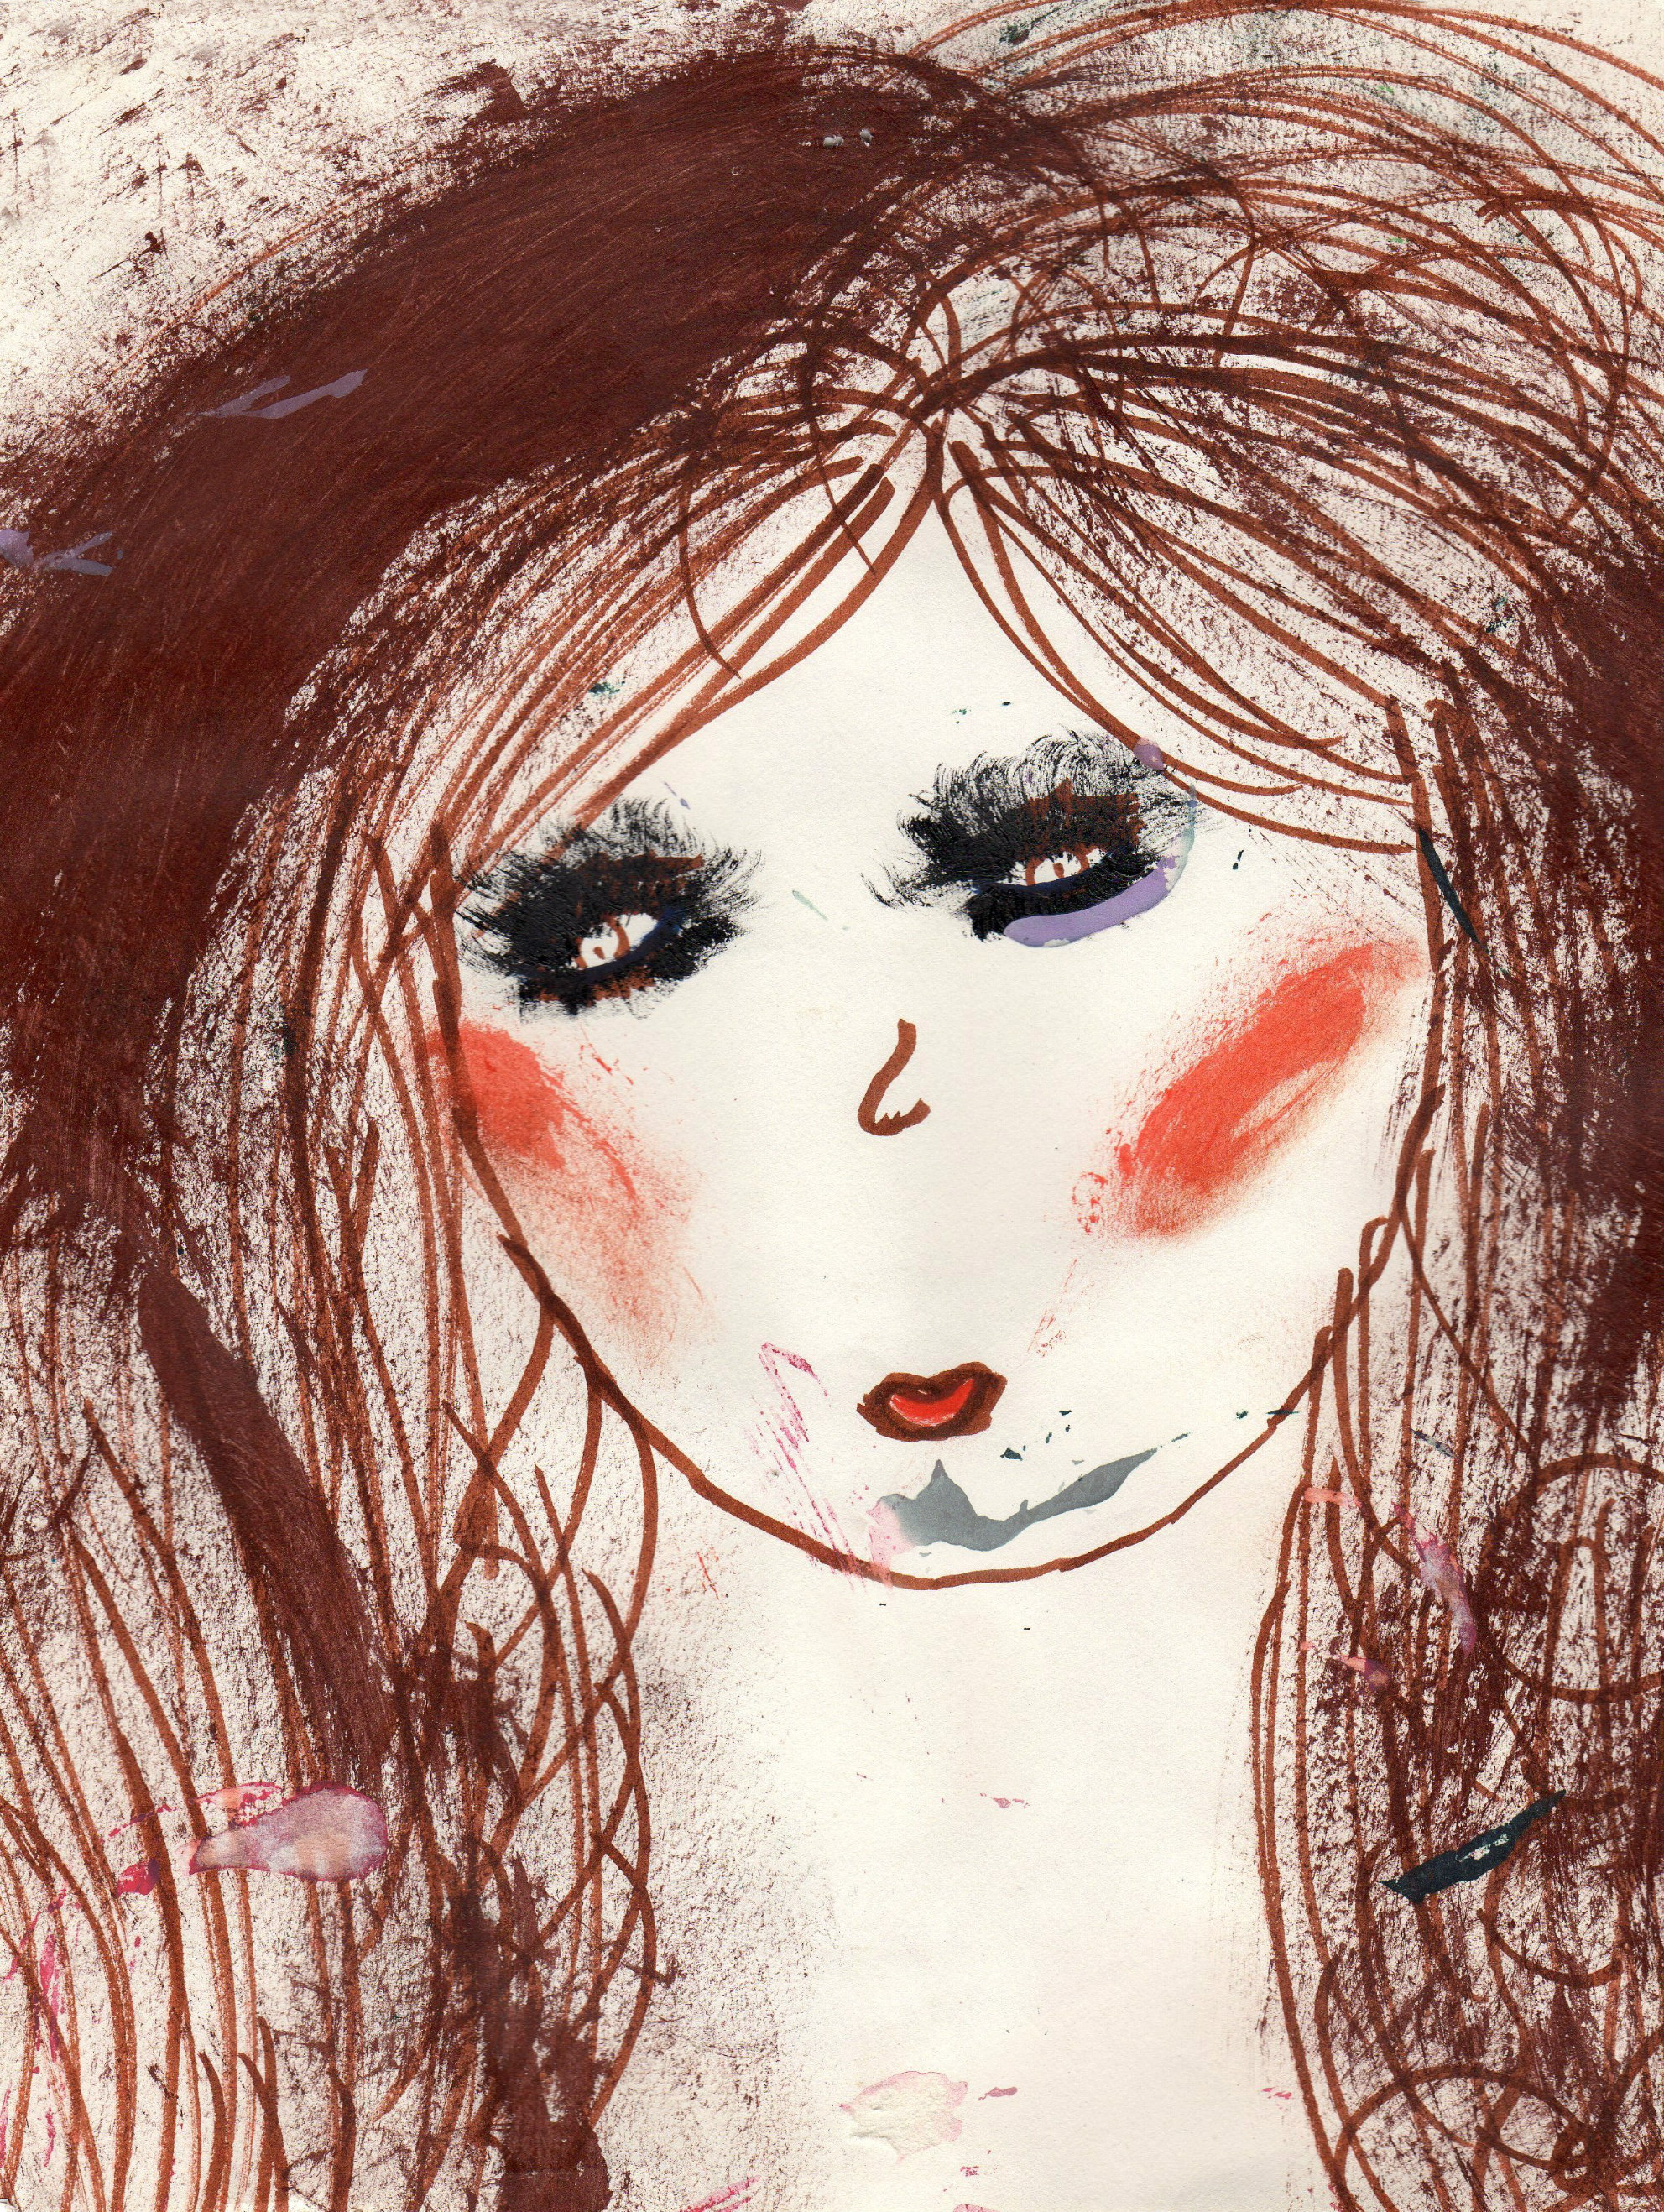 Brown Hair Angel Ross Paint, Markers on paper Photo Print $35